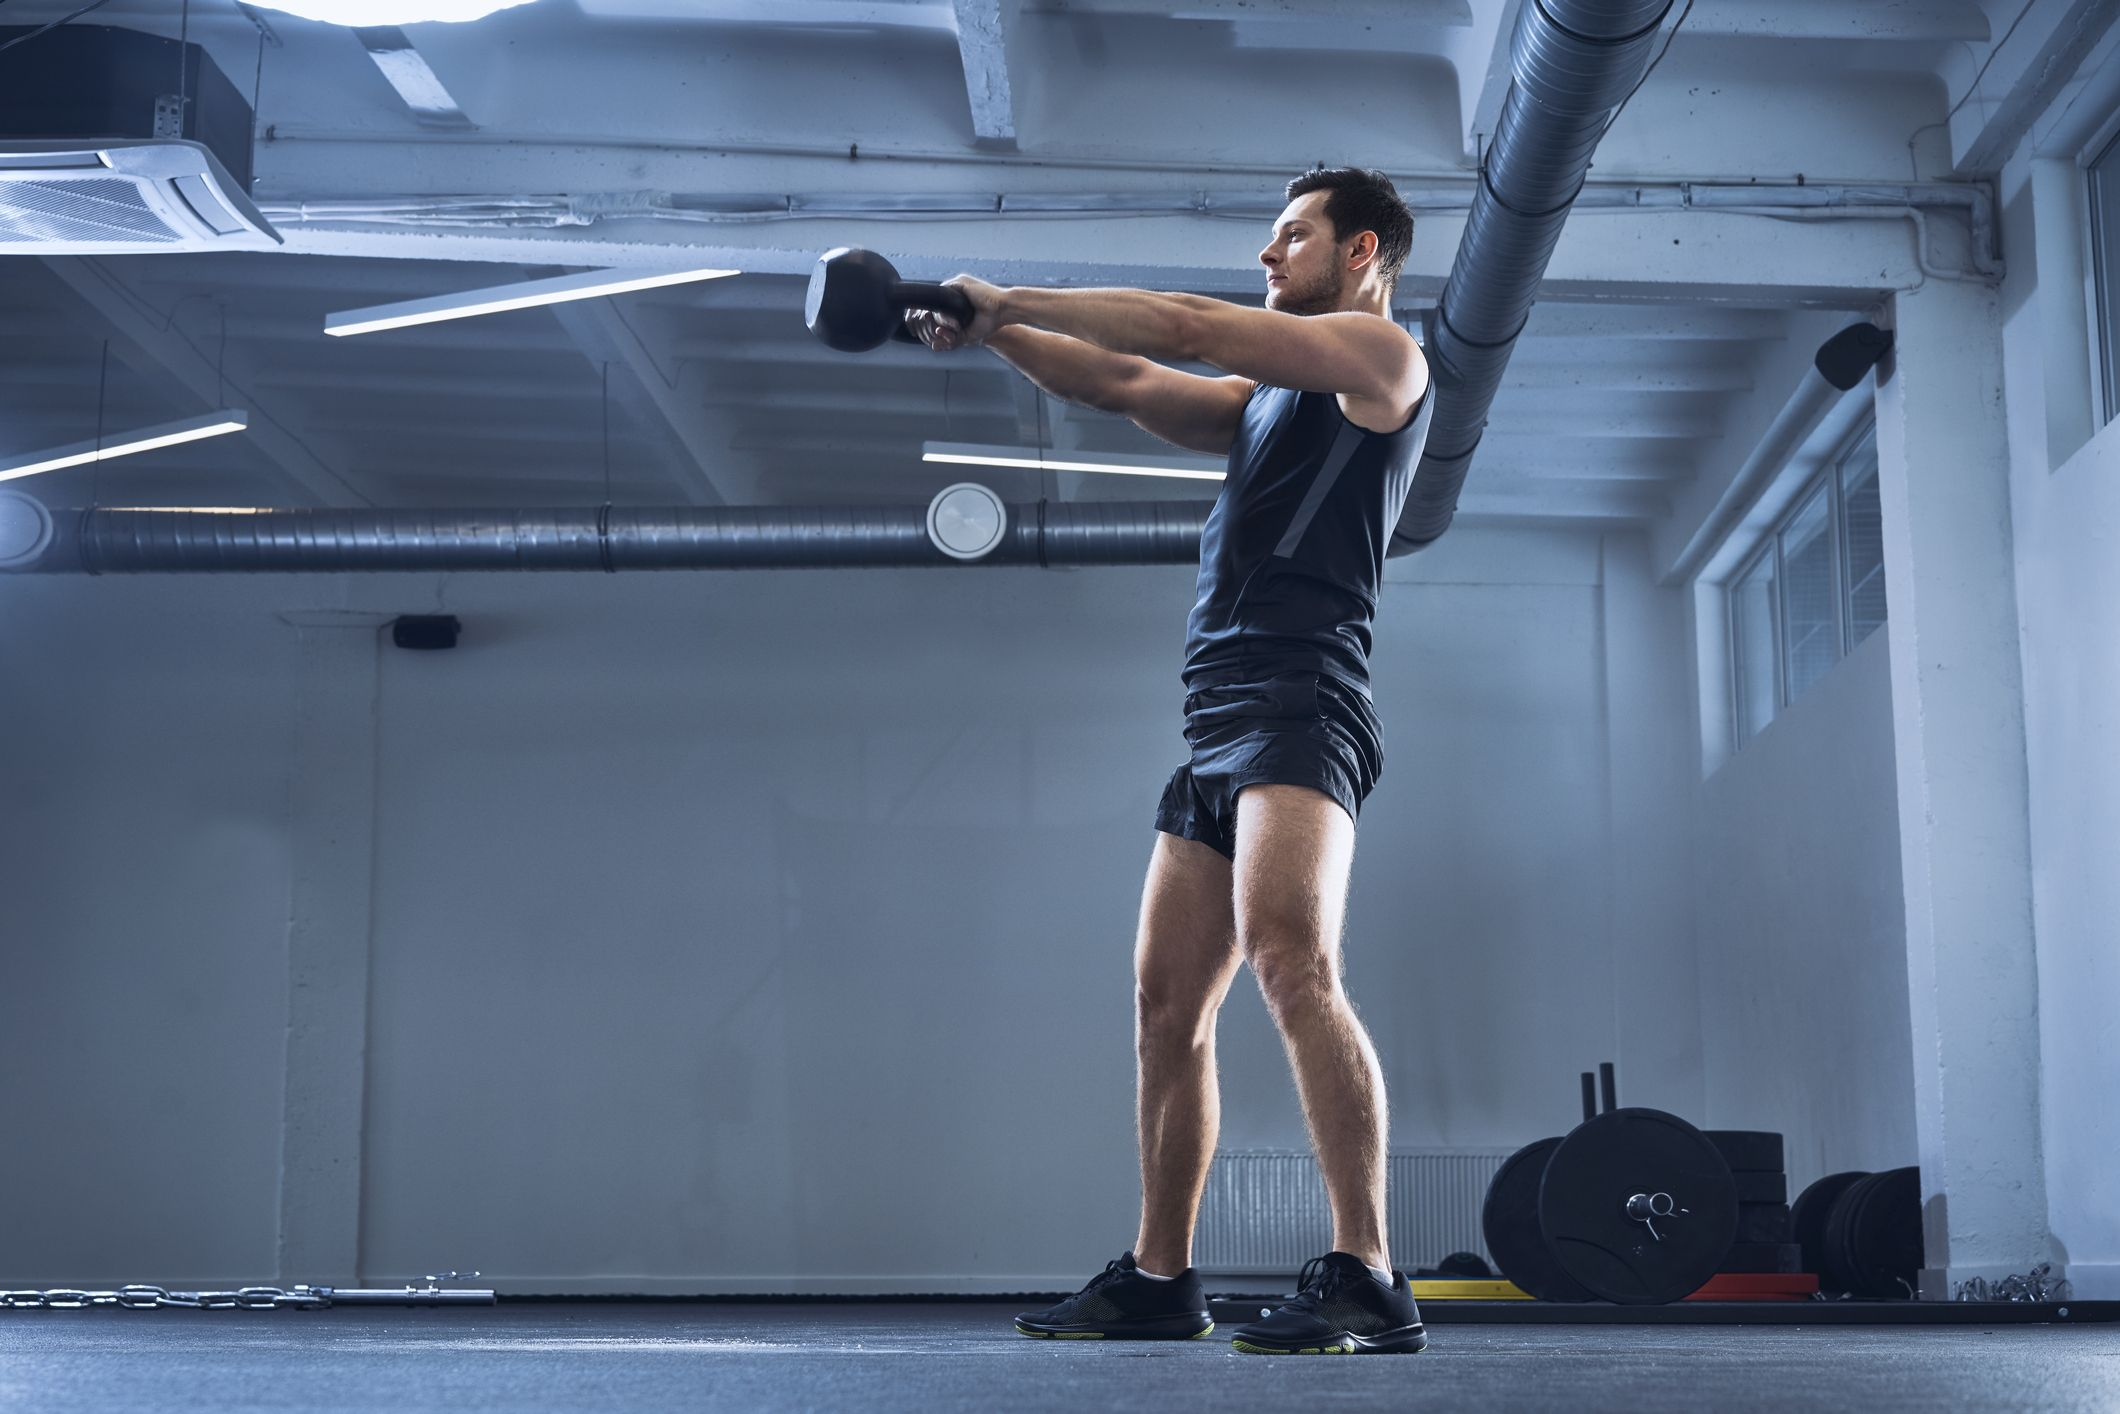 Supercharge Your Fitness Levels in Just Four Minutes with Tabata